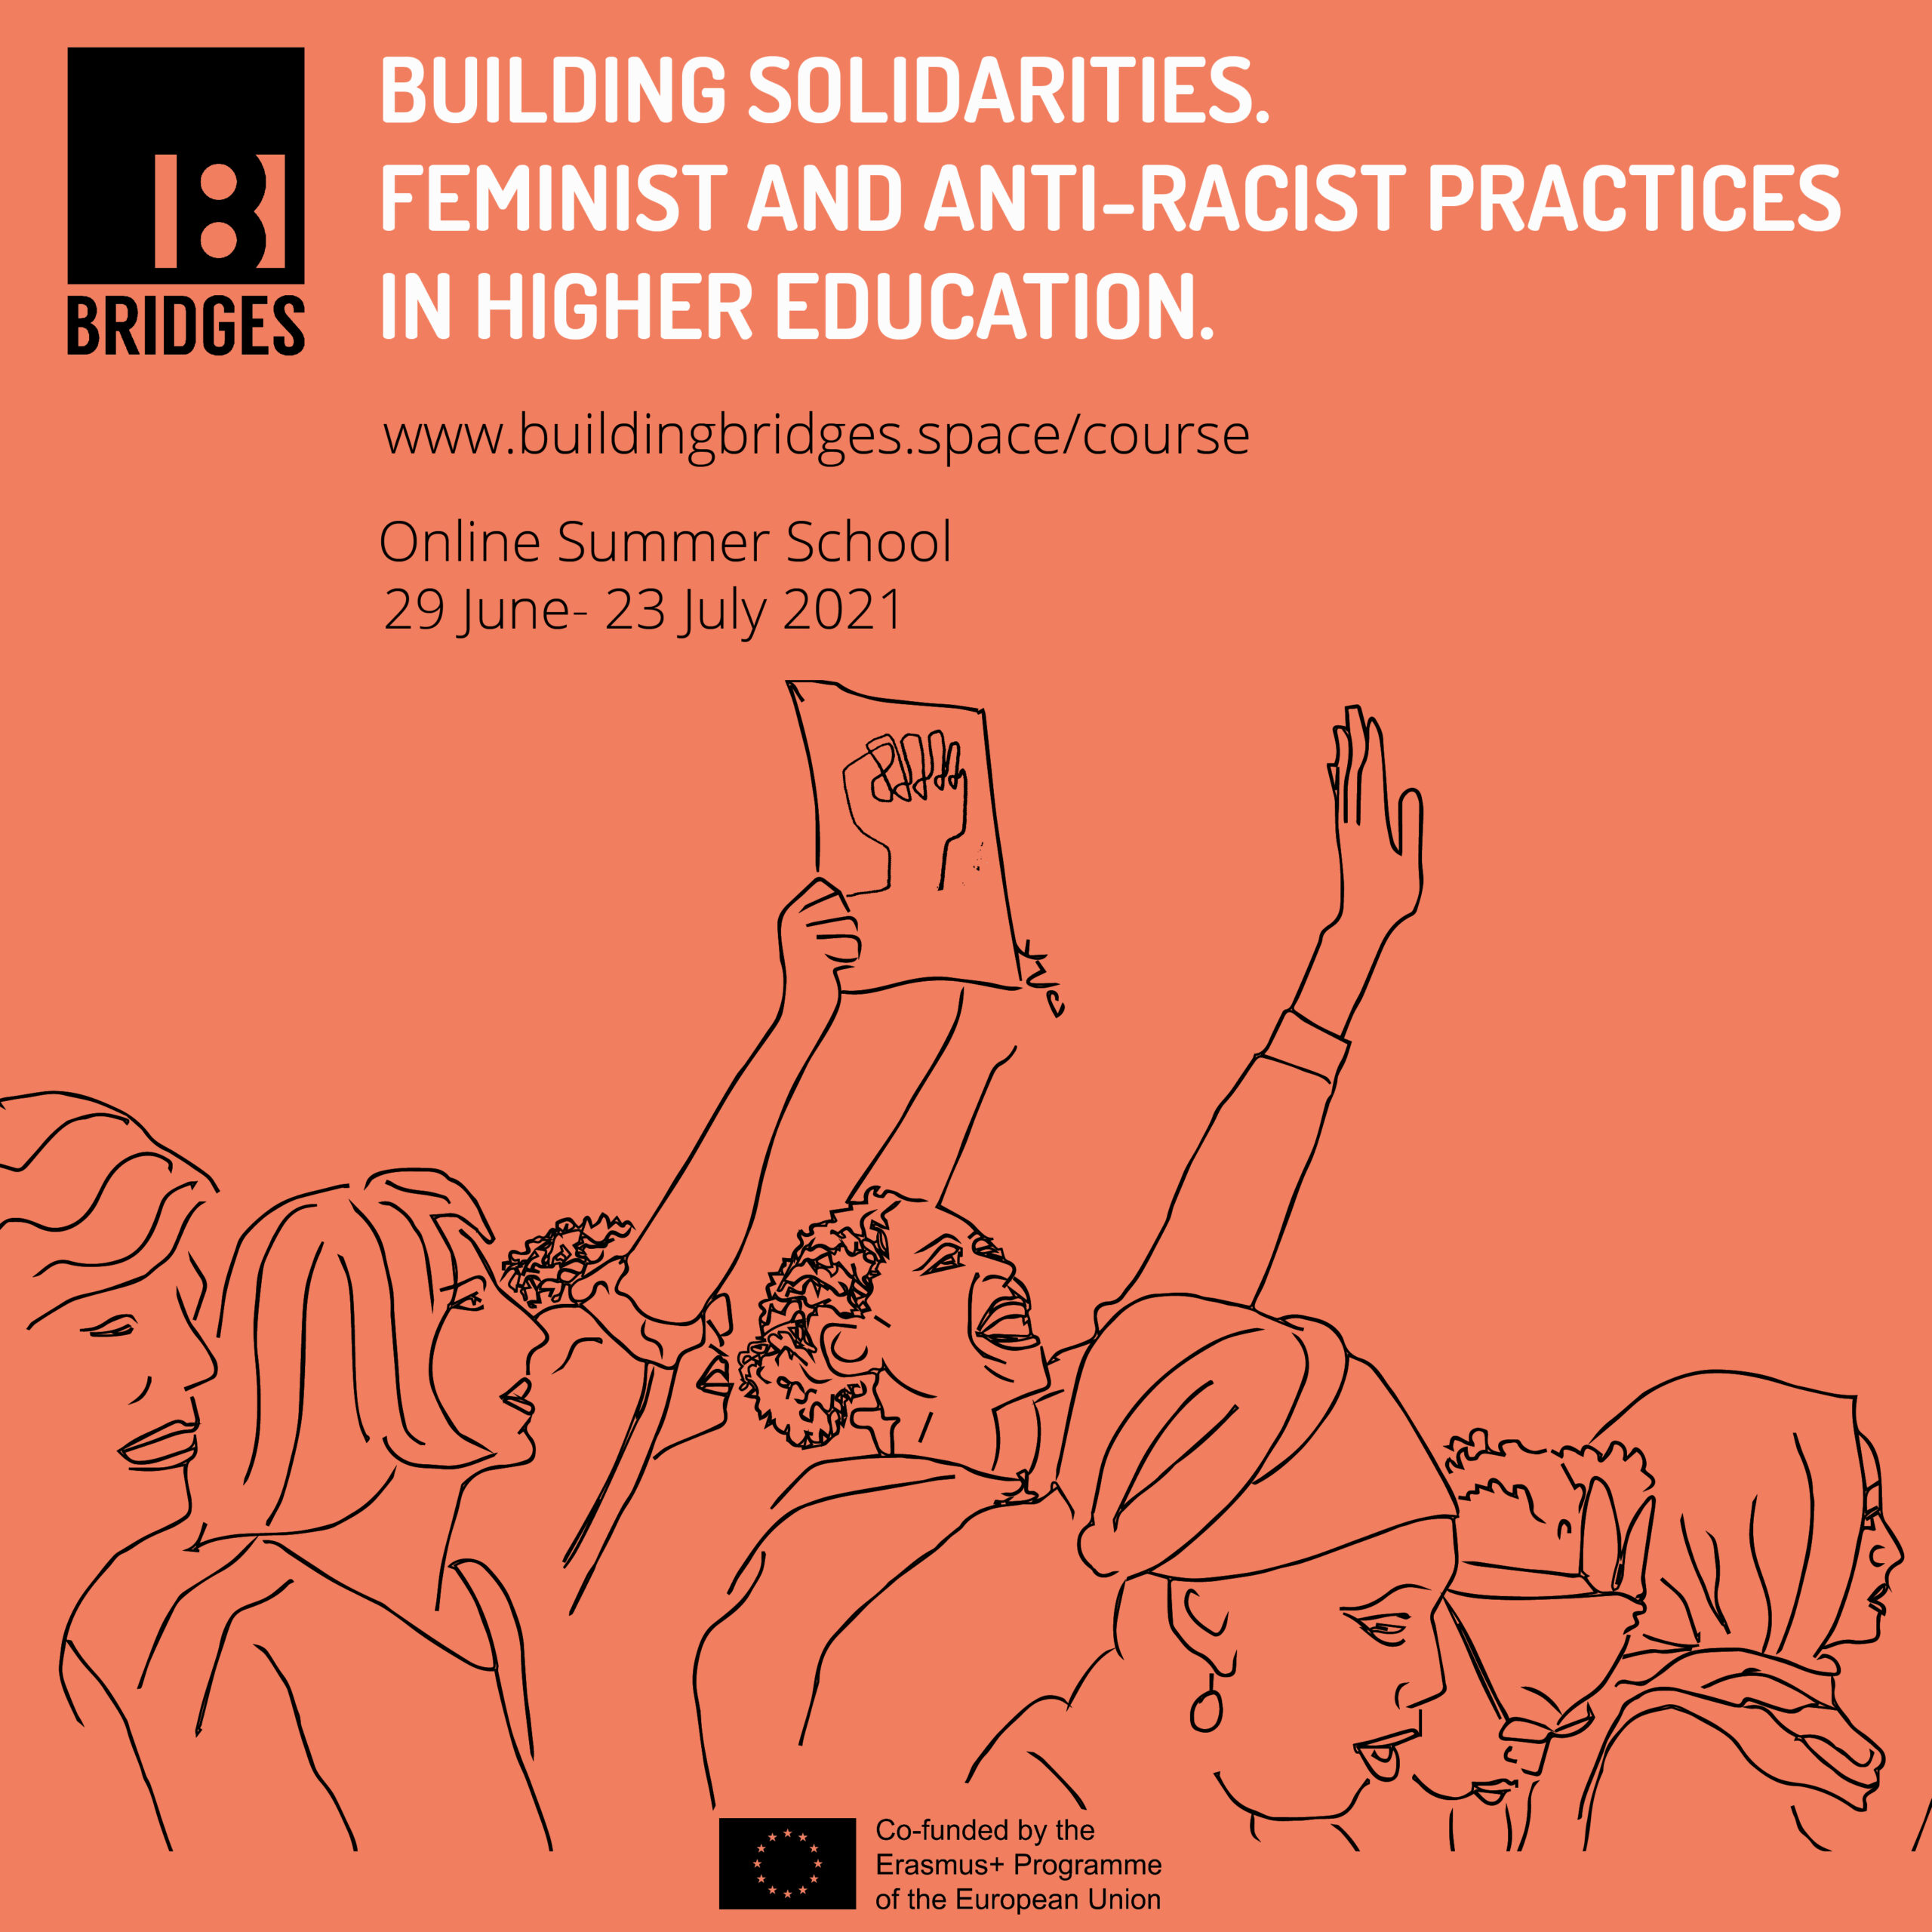 You are currently viewing BRIDGES SUMMER SCHOOL: Building Solidarities, Feminist and Anti-Racist practices in Higher Education